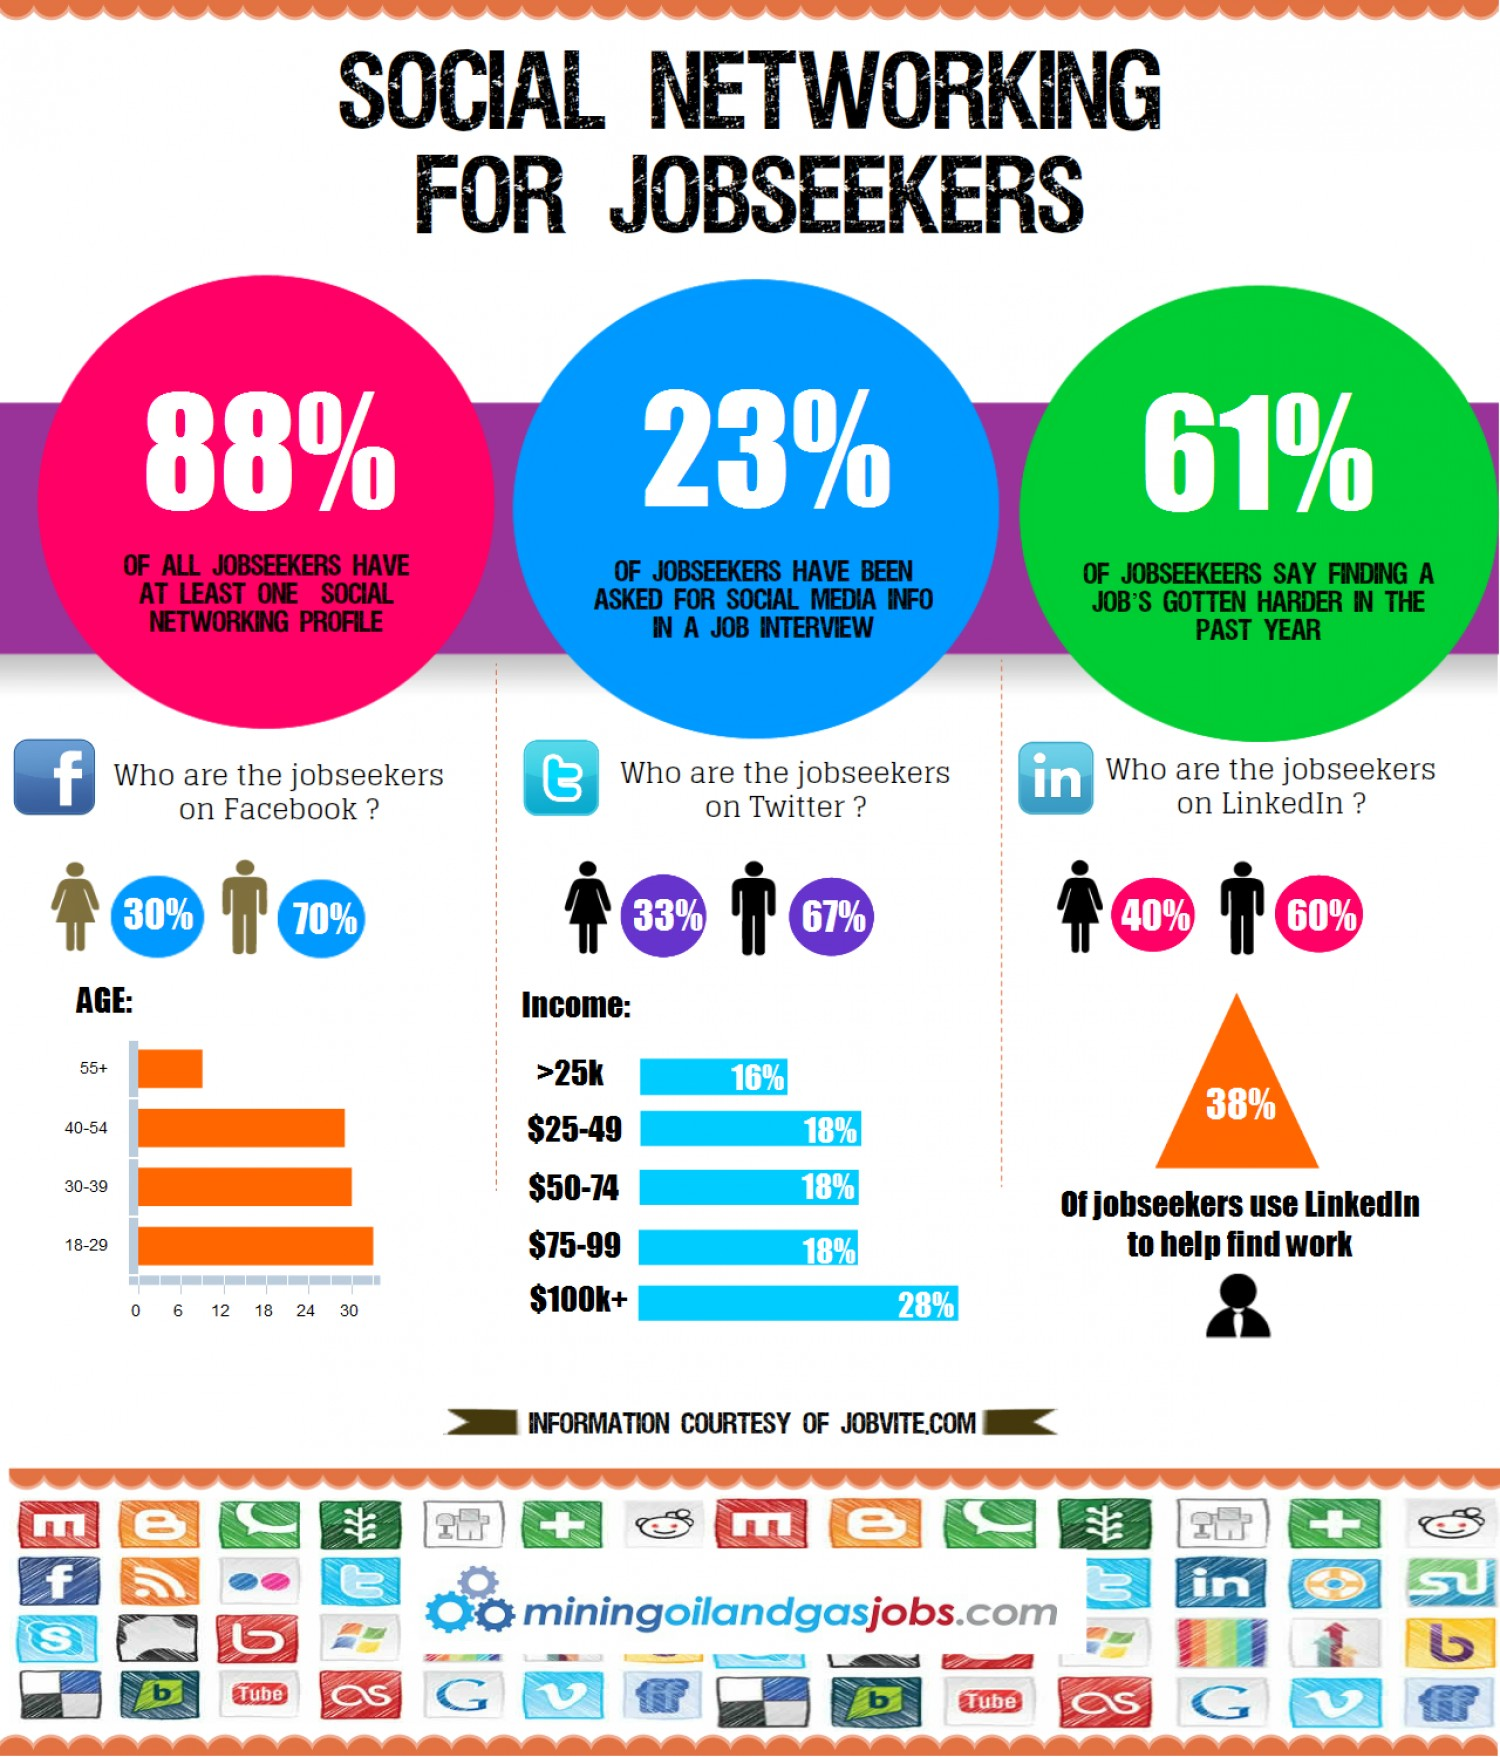 10.-Social-Networking-for-Jobseekers.jpg